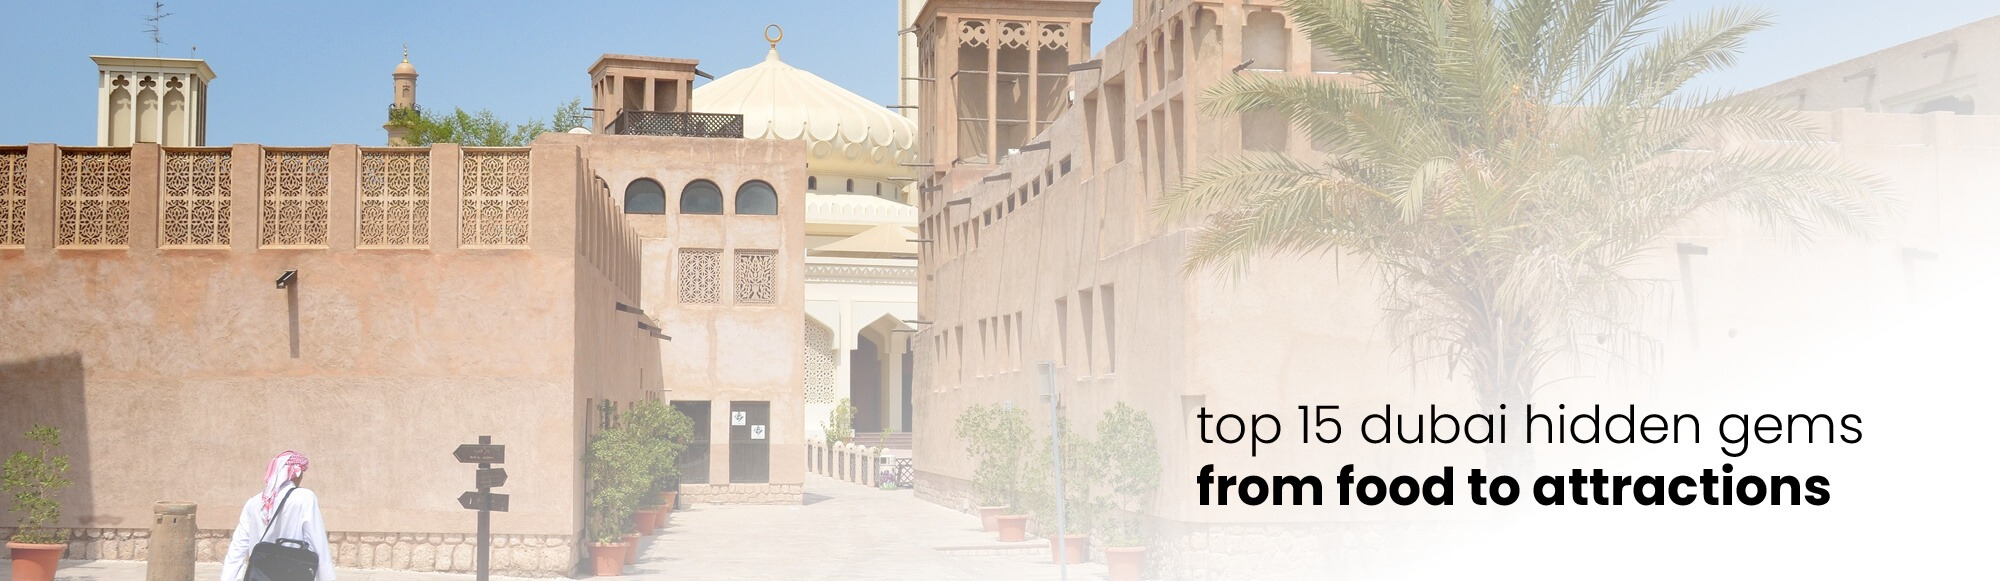 Top 15 Things to See and Do in Dubai